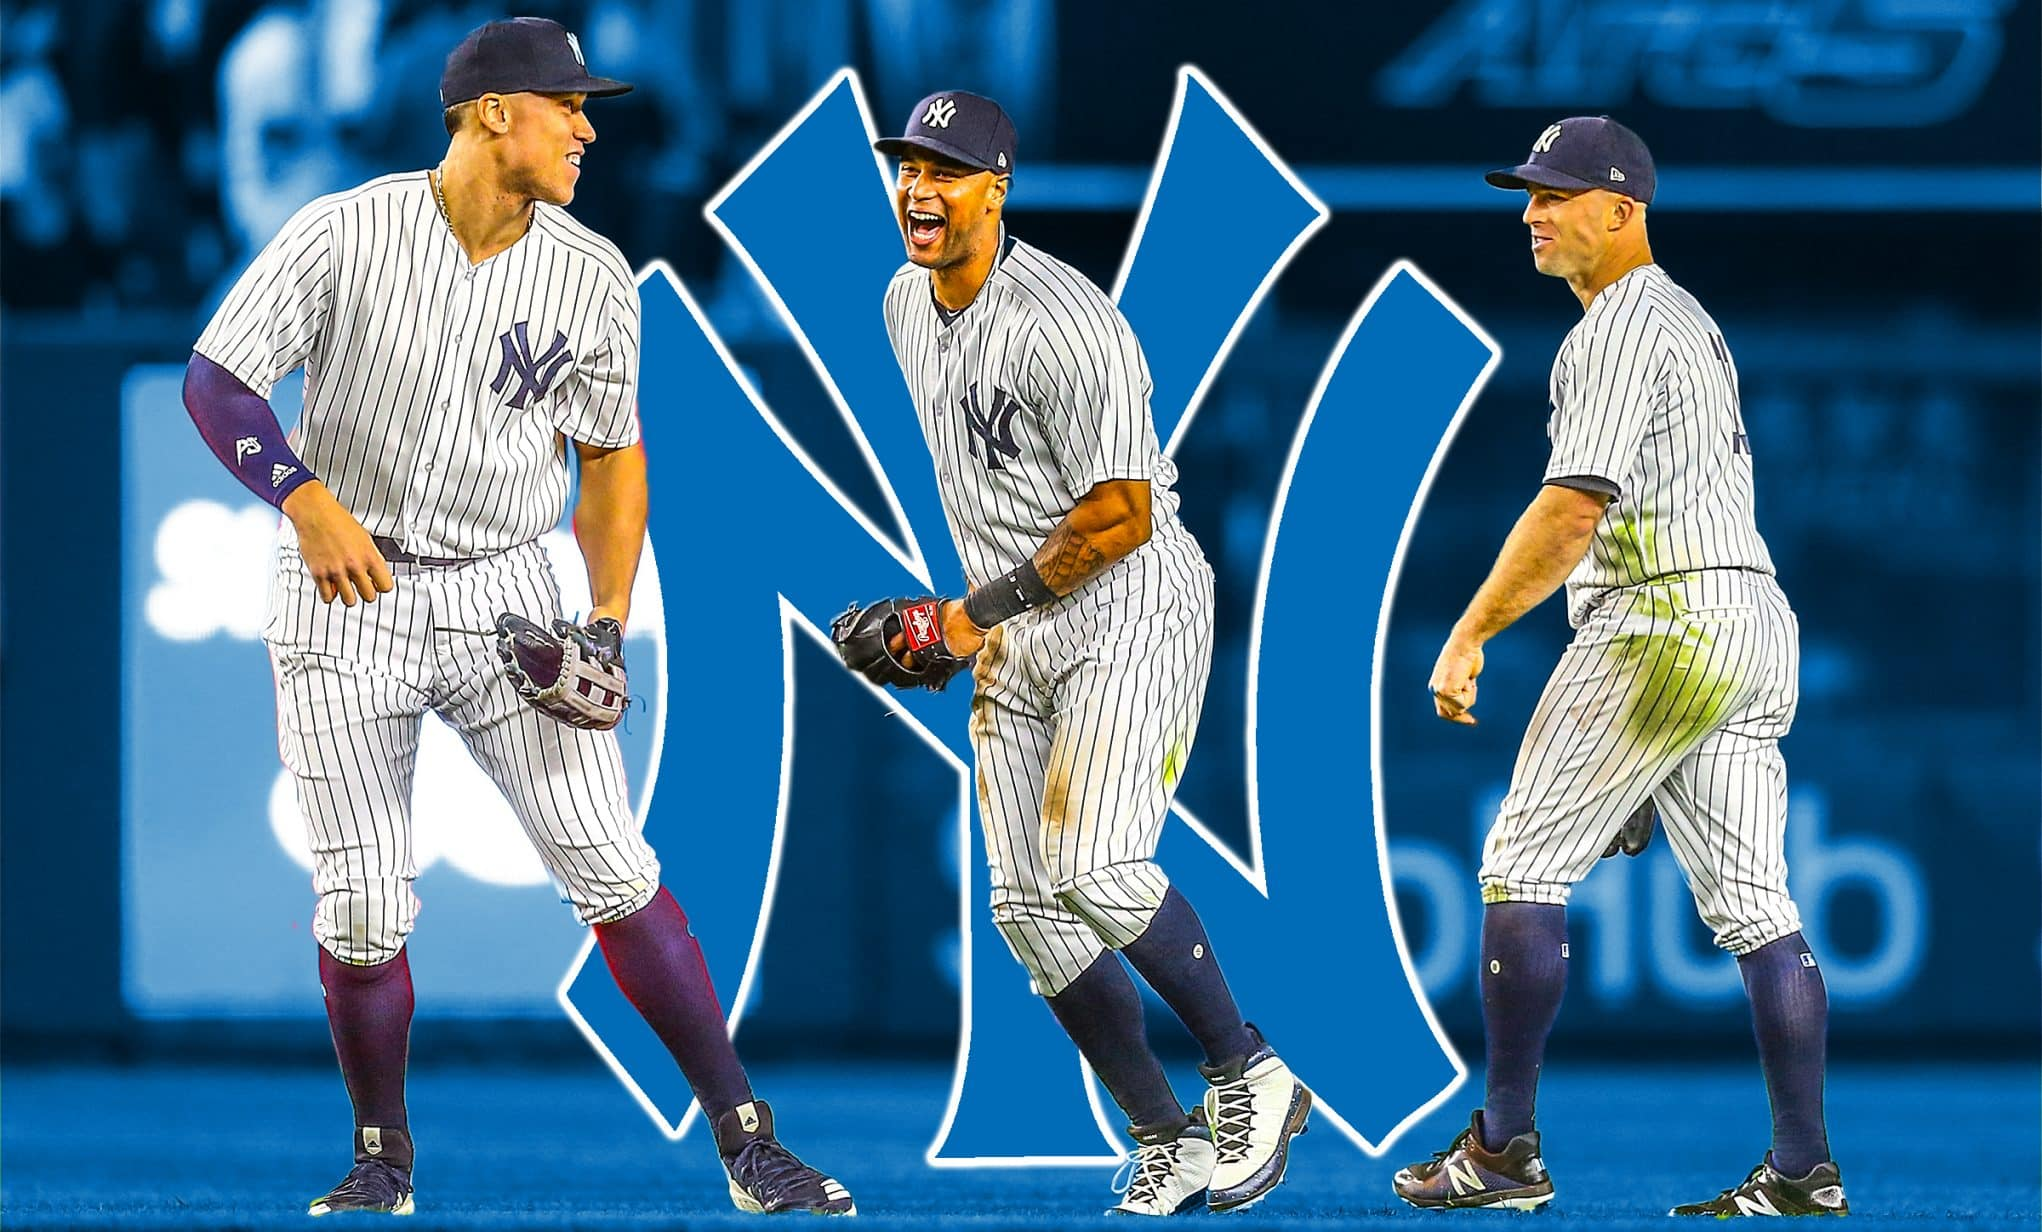 New York Yankees: Breaking down the different dads in pinstripes